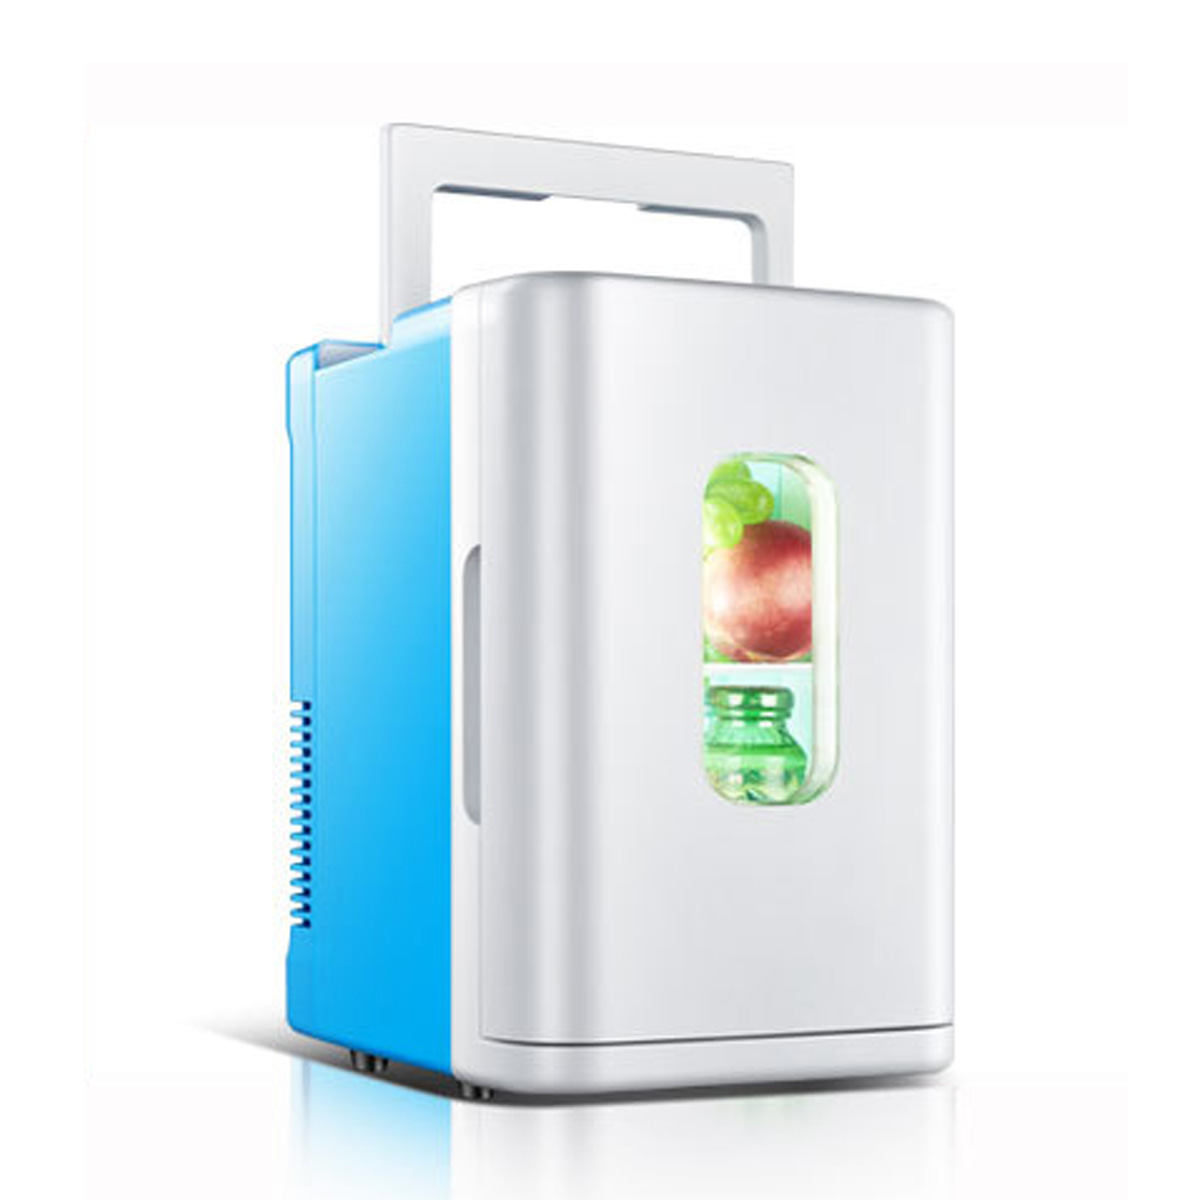 10L Car Refrigerator Dormitory Small Refrigerator Mini Refrigerator Car Home Dual-use